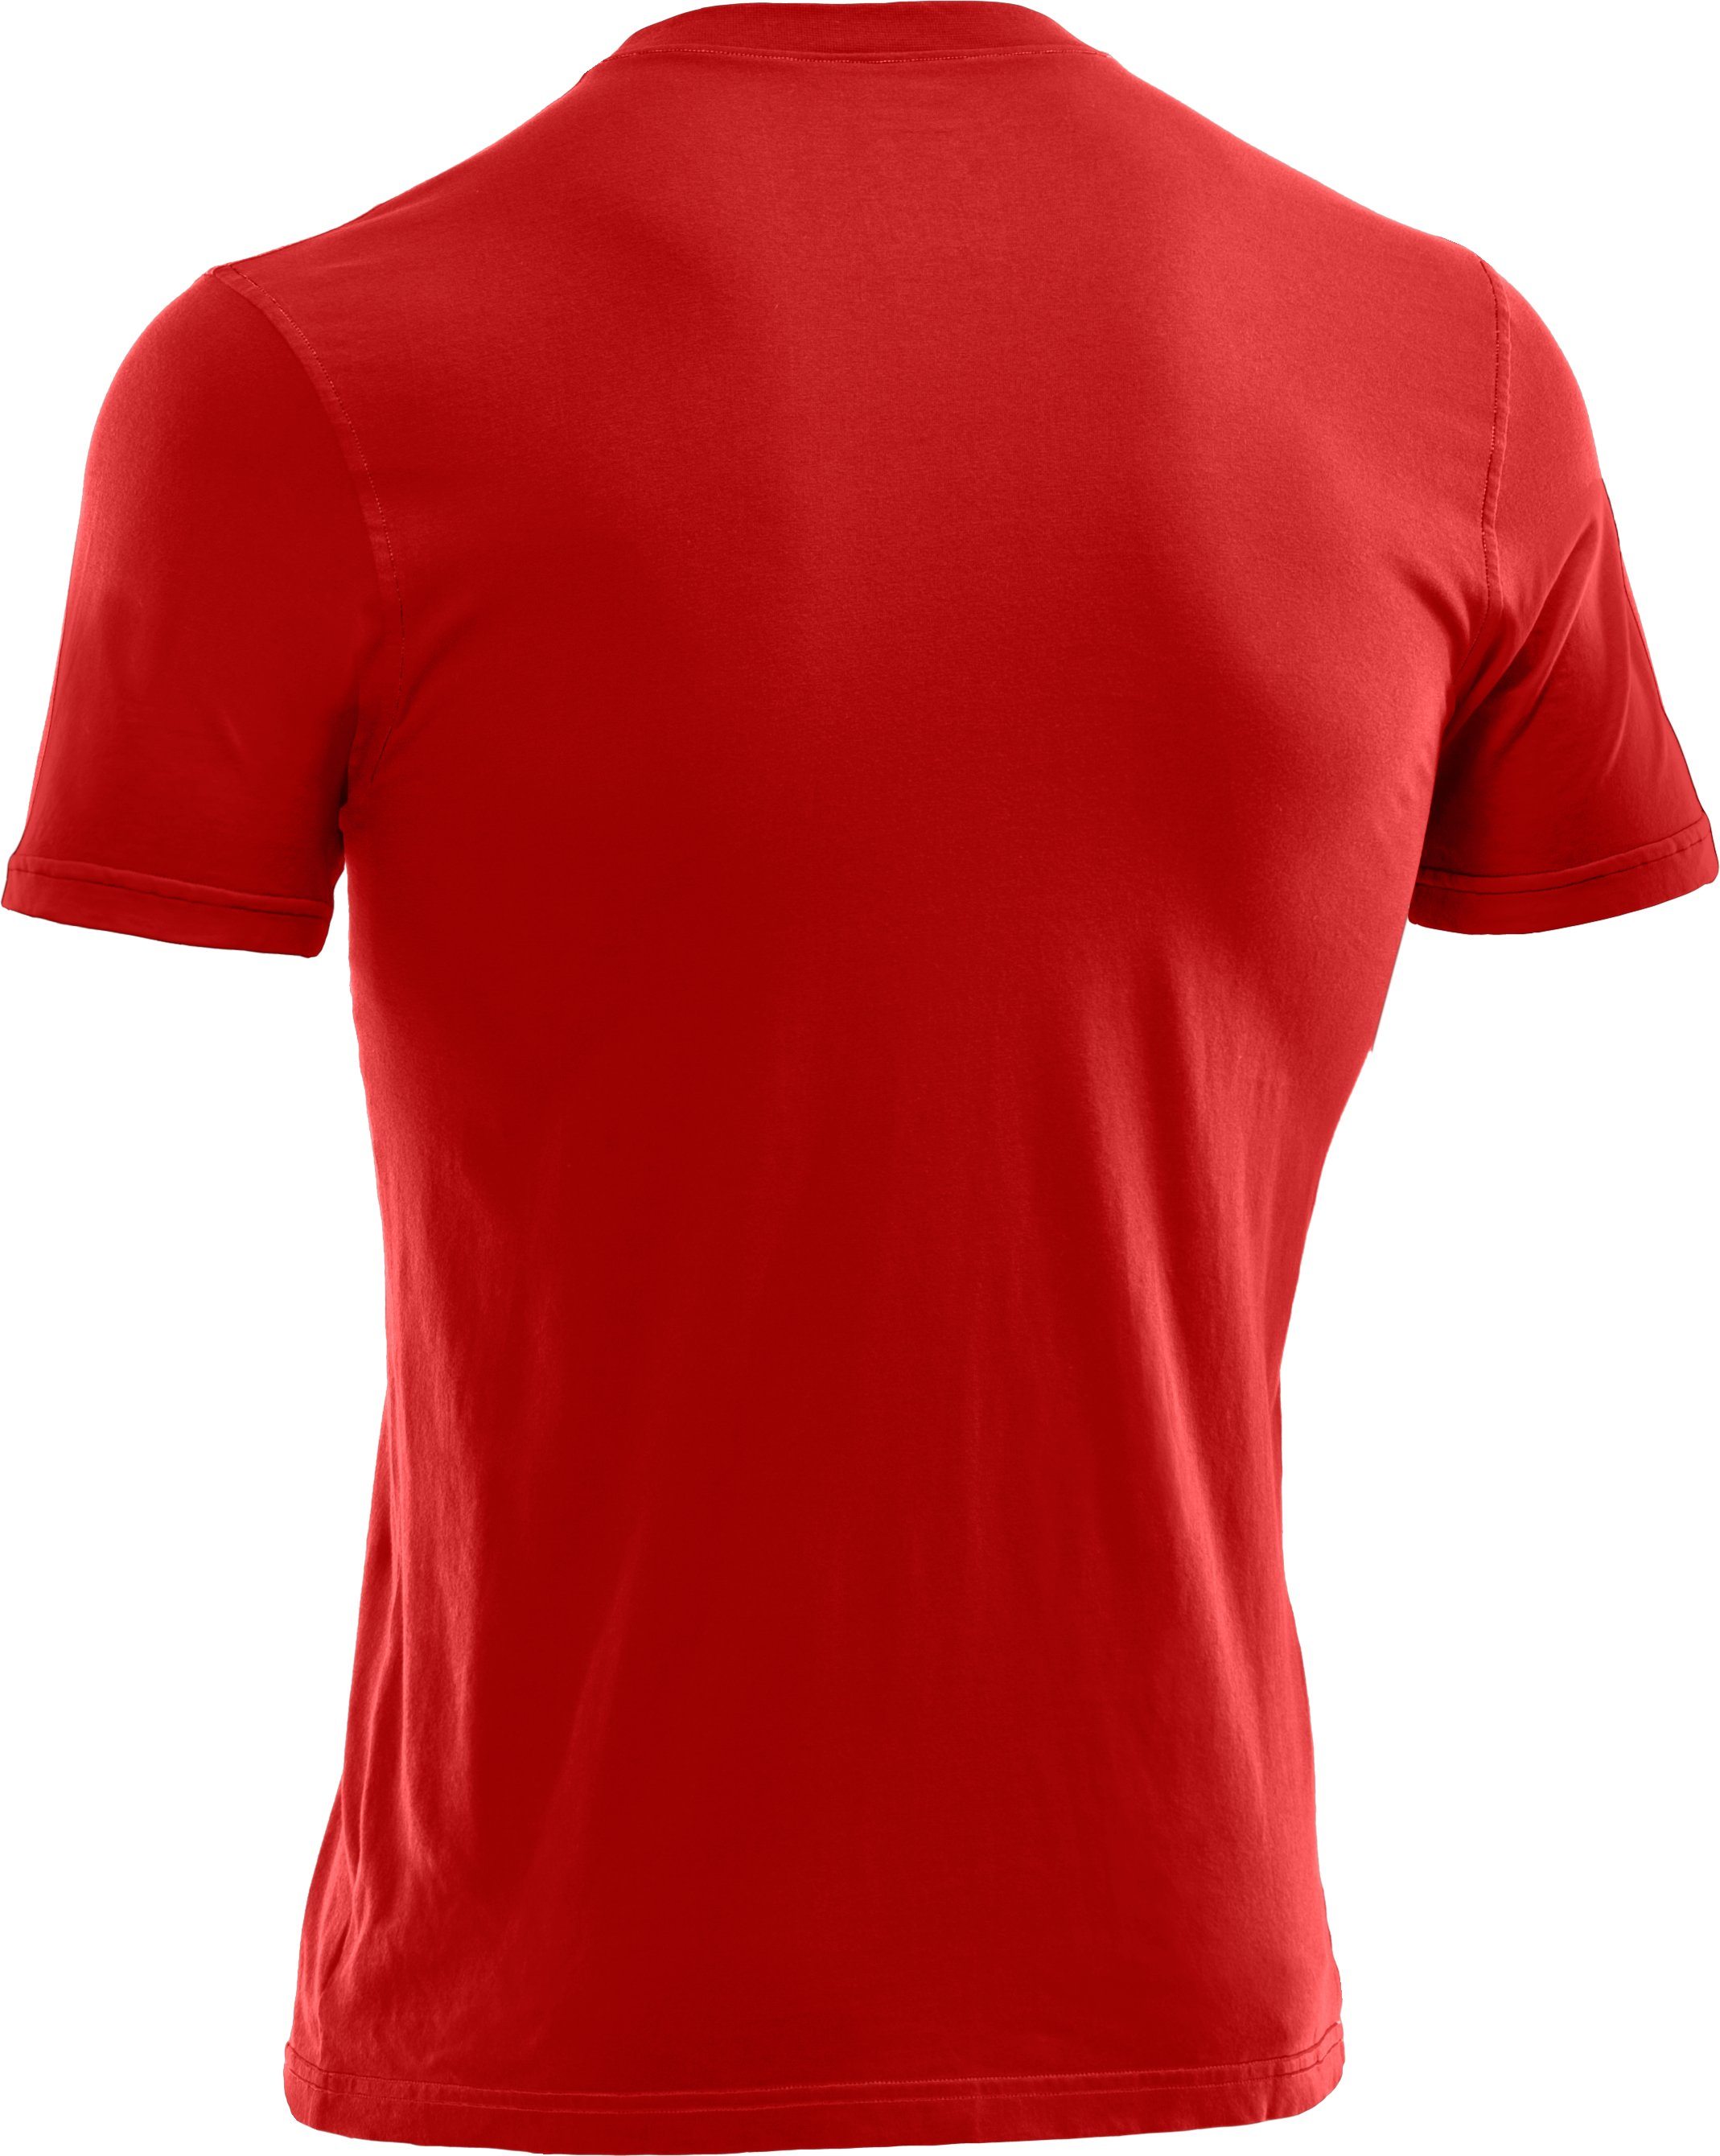 Men's Charged Cotton® Pocket T-Shirt, Fireball, undefined